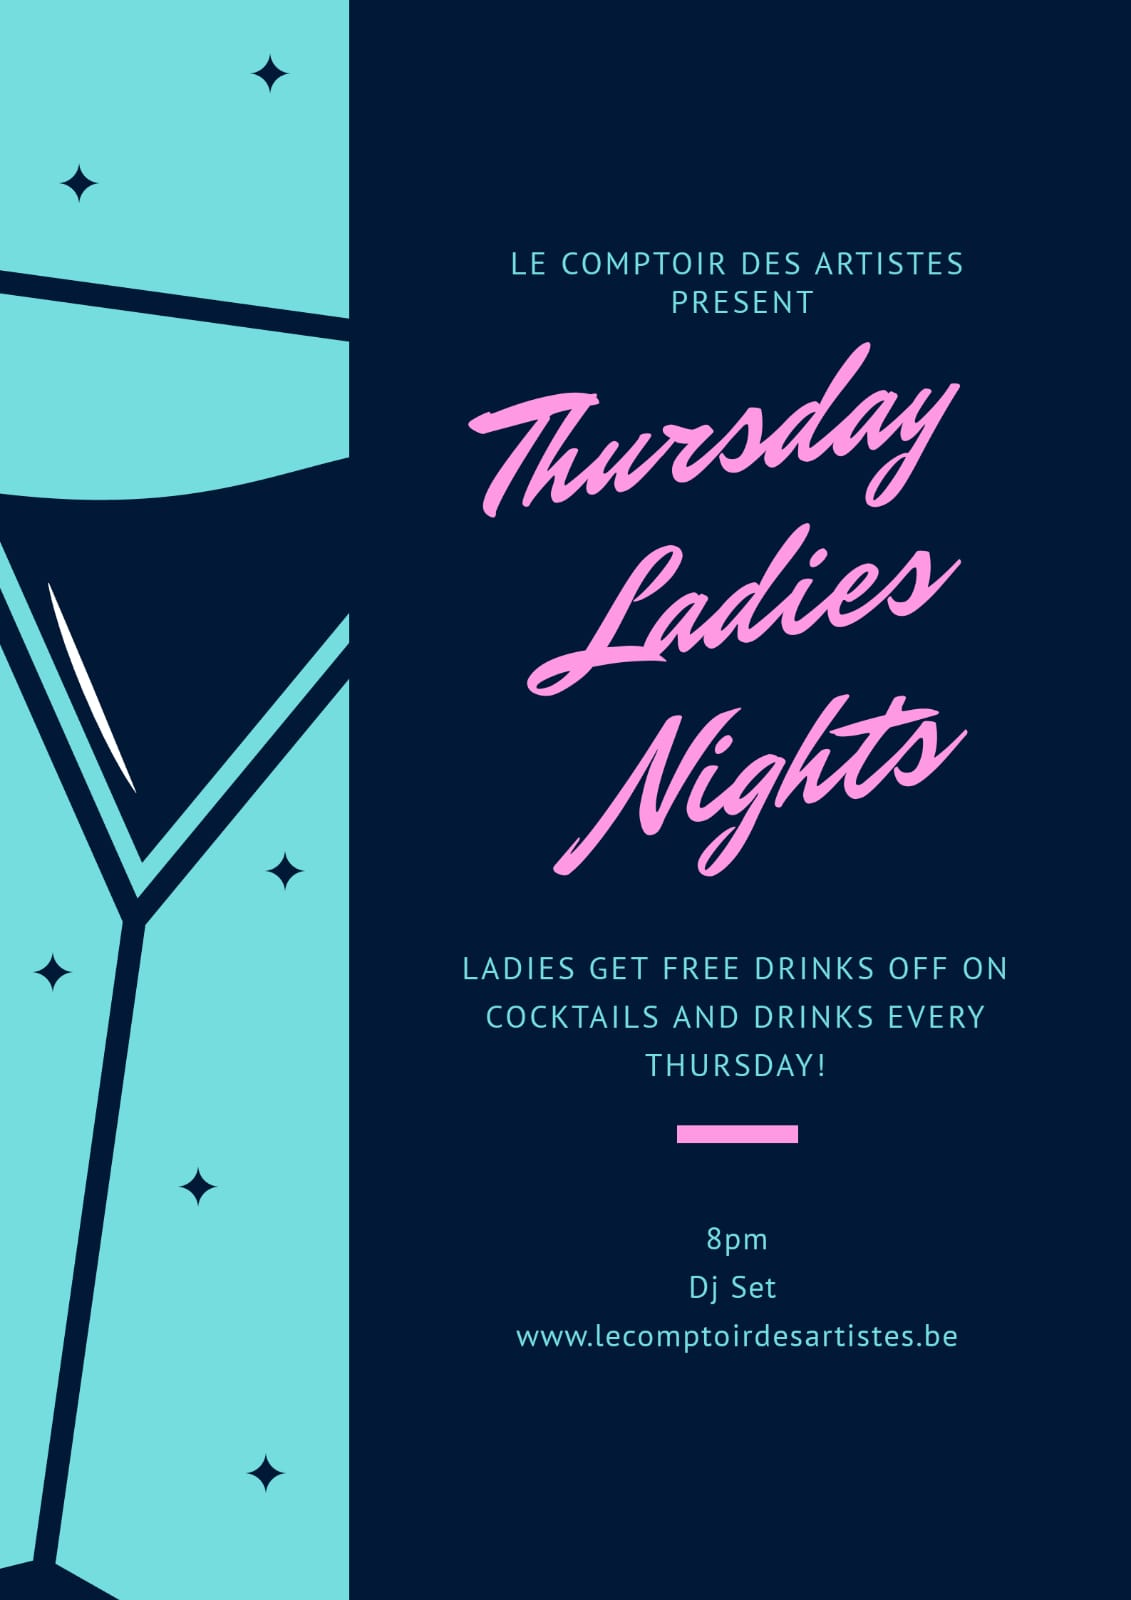 THURSDAY LADIES NIGHT